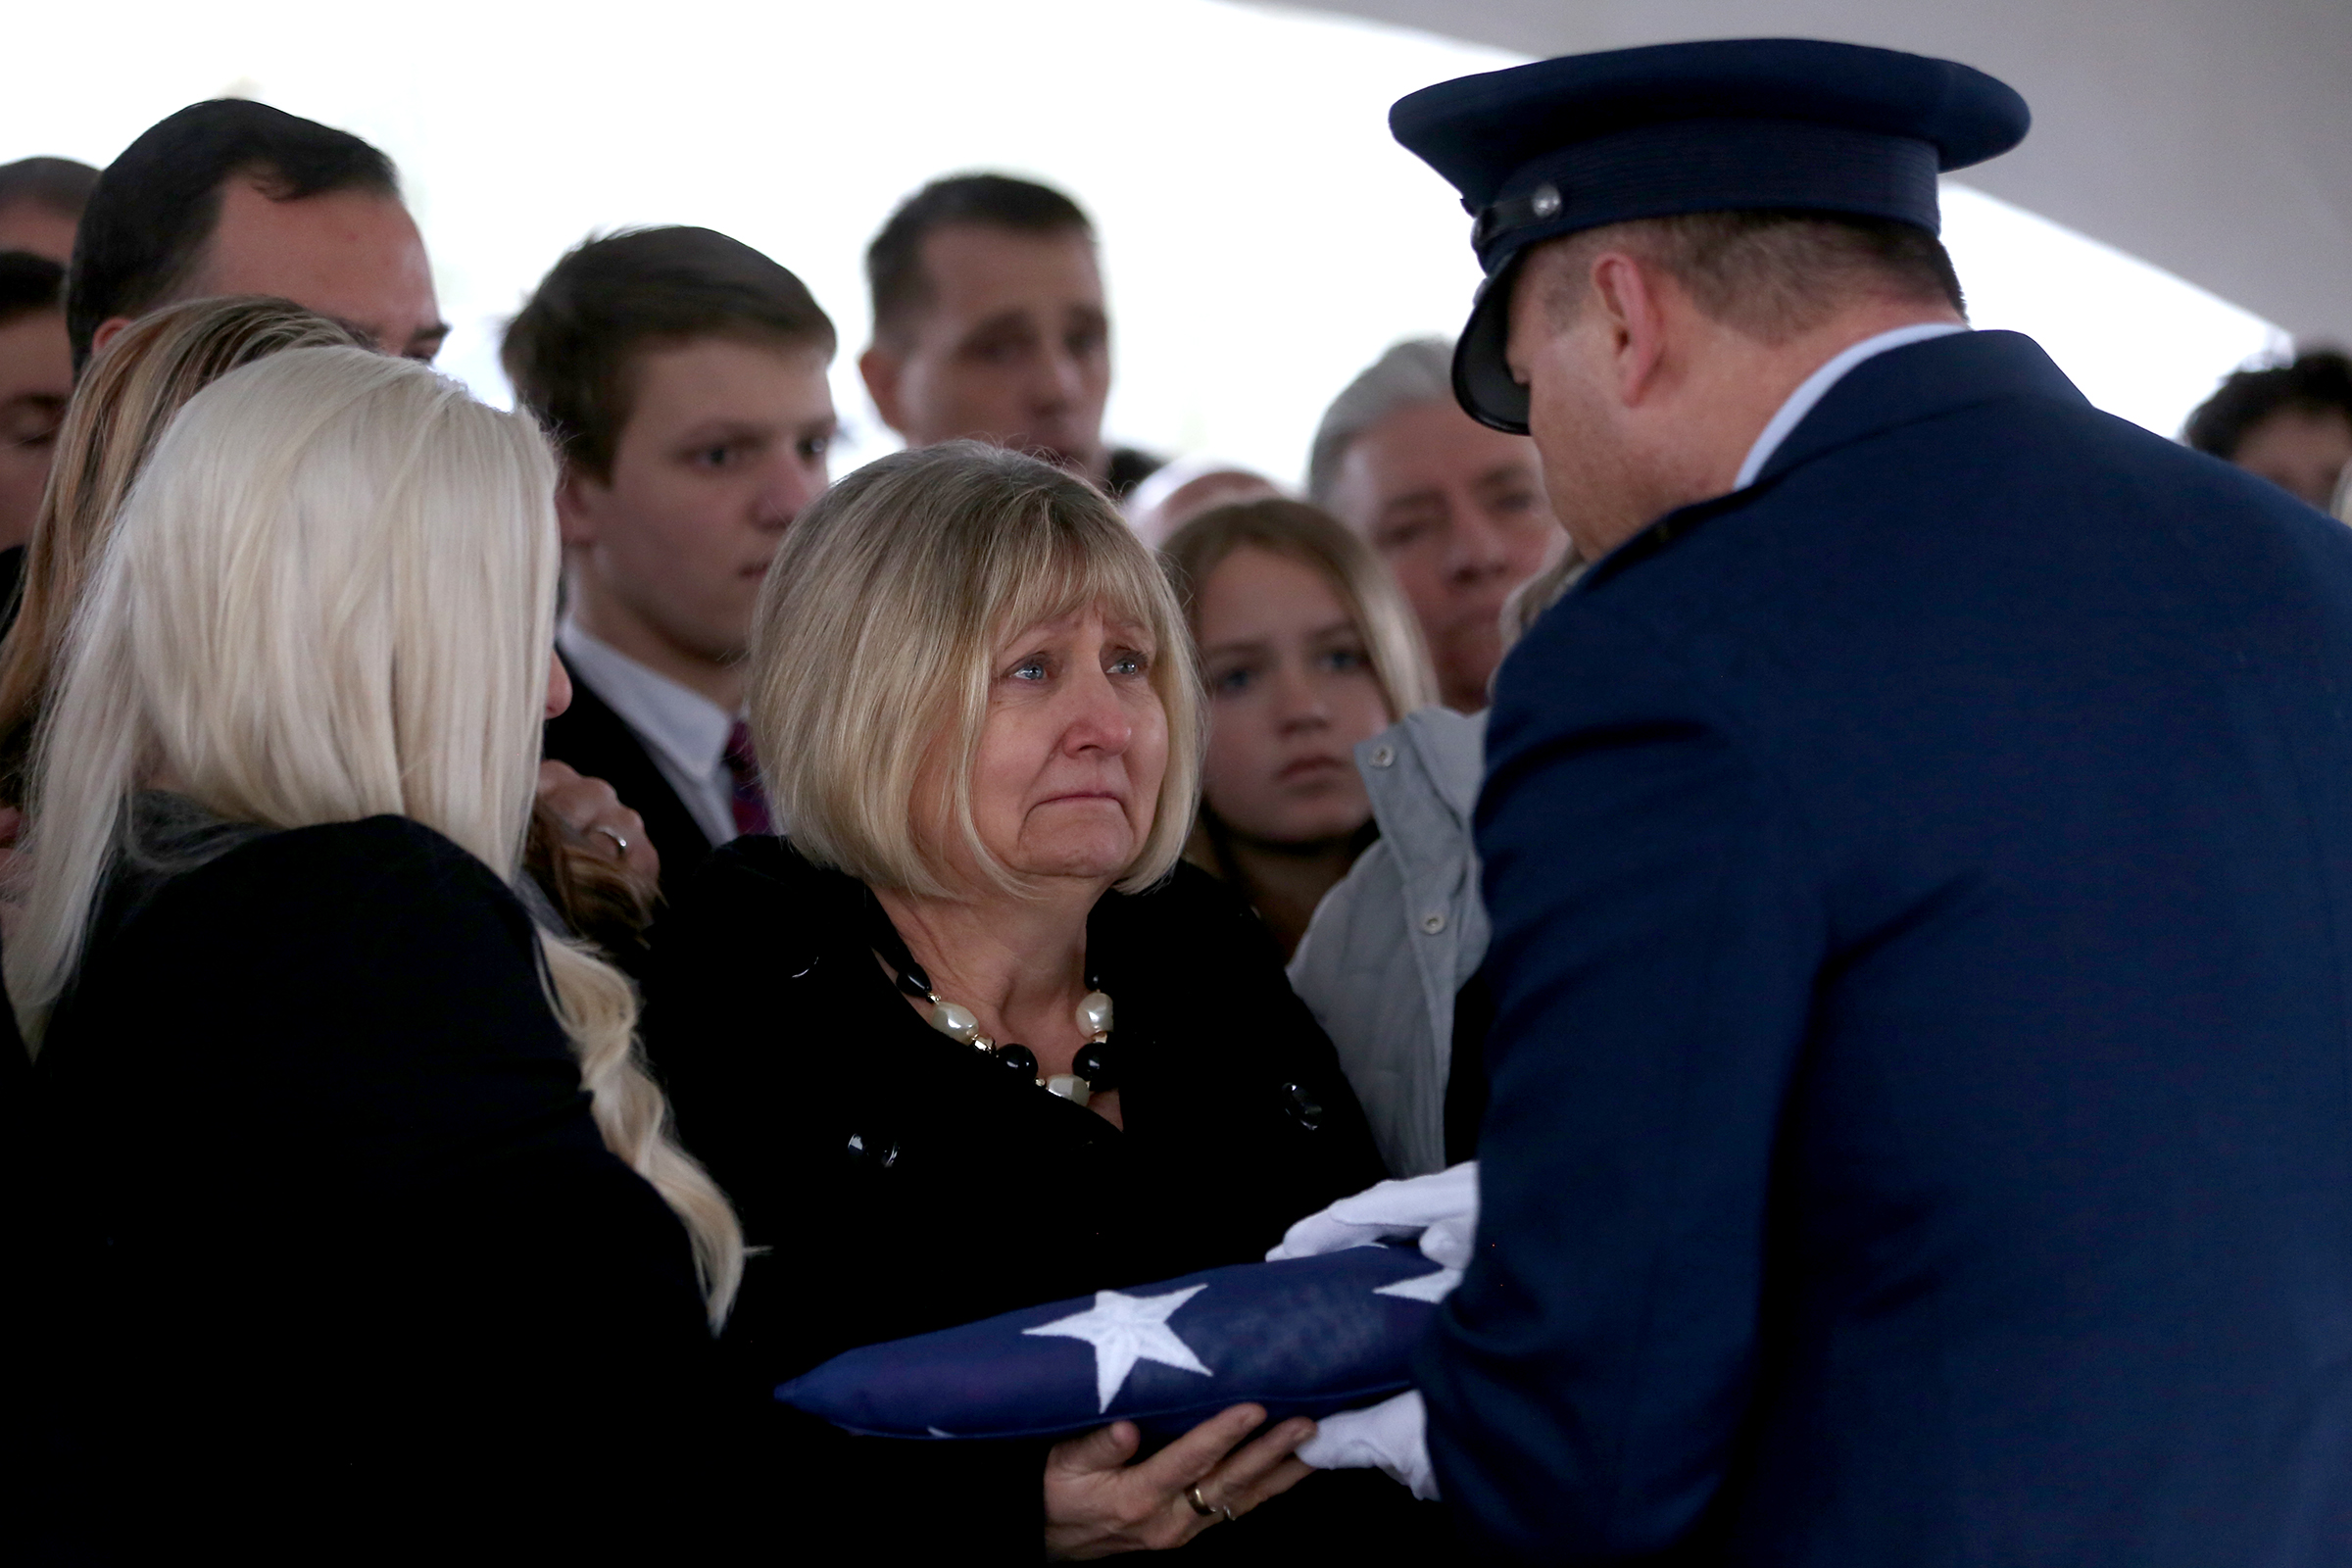 Cathy Richardson is presented with the flag following the state funeral for her husband, Secretary of State Dennis Richardson, at the Oregon State Capitol in Salem on Wednesday, March 6, 2019.